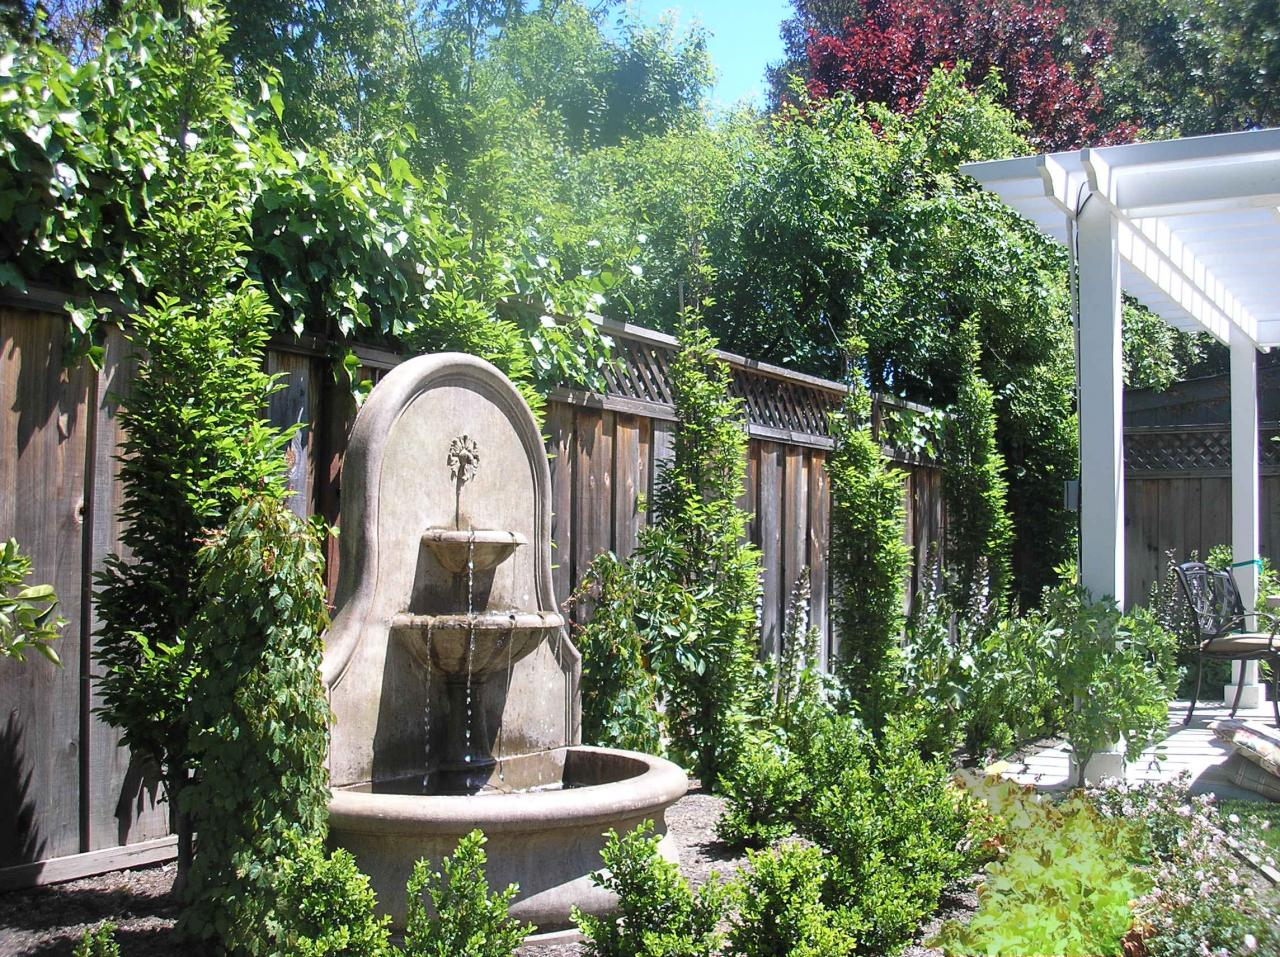 Awesome Wall Fountain. Ambience Garden Design Water Features